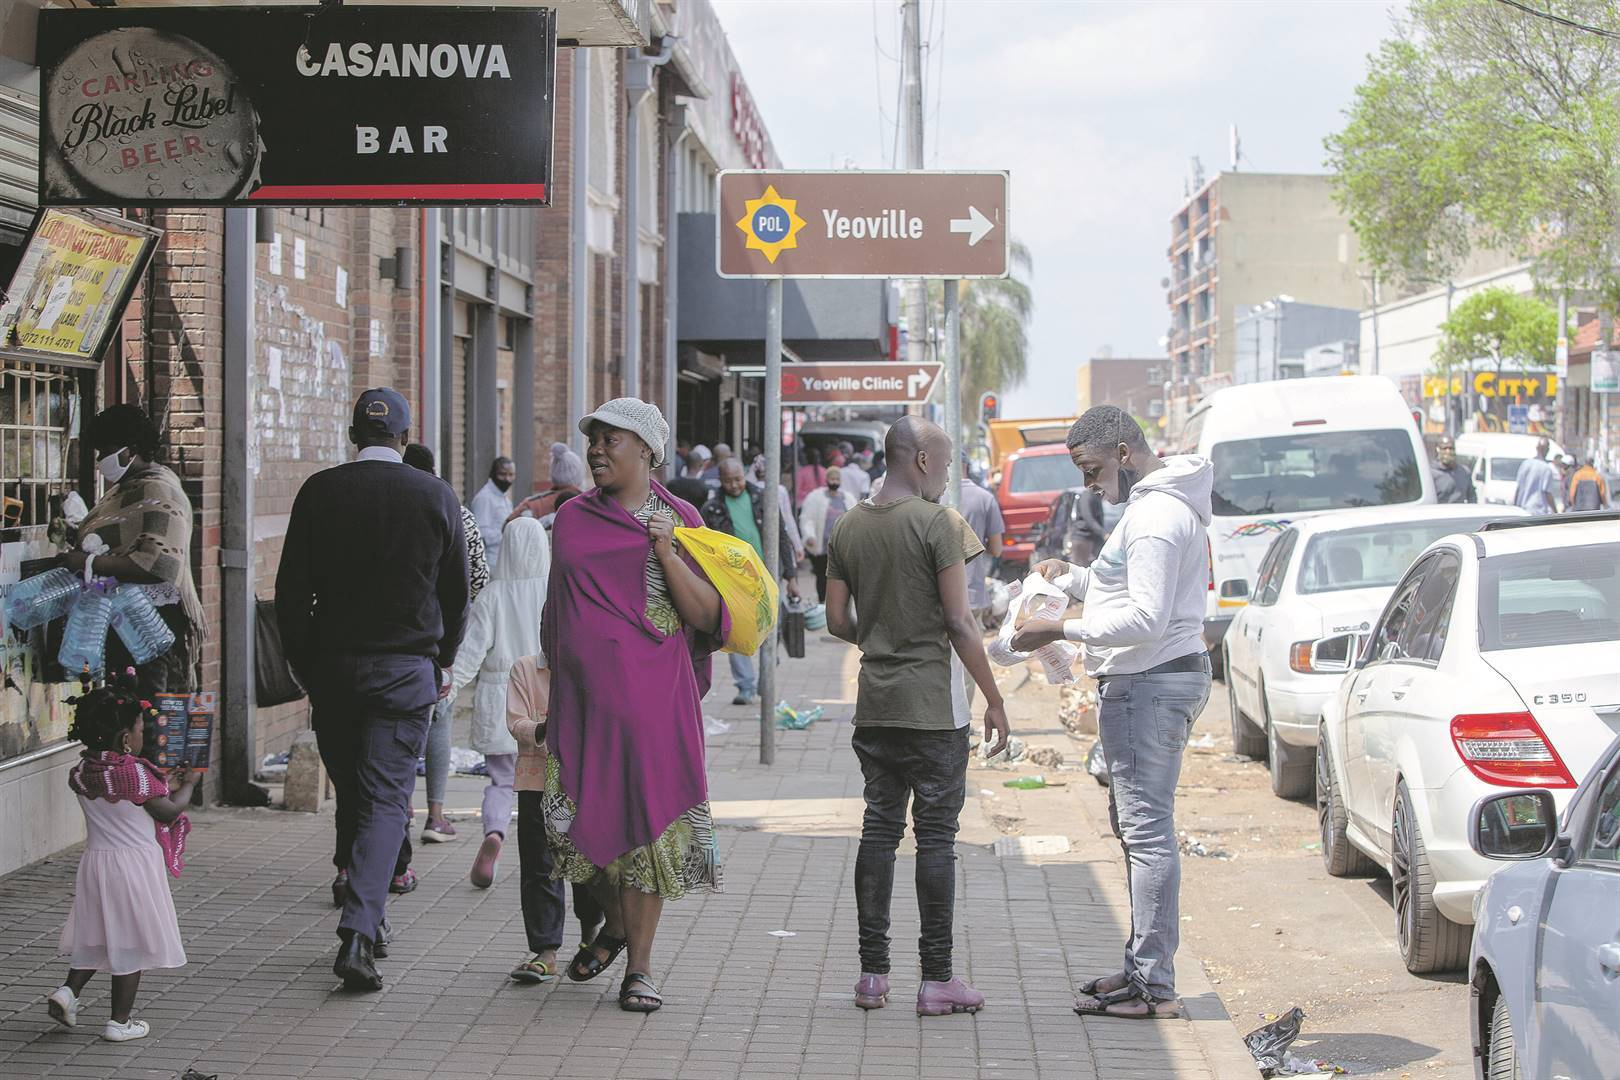 Yeoville is a far cry from the vibrant node of activity it once was. Photo: Gallo Images